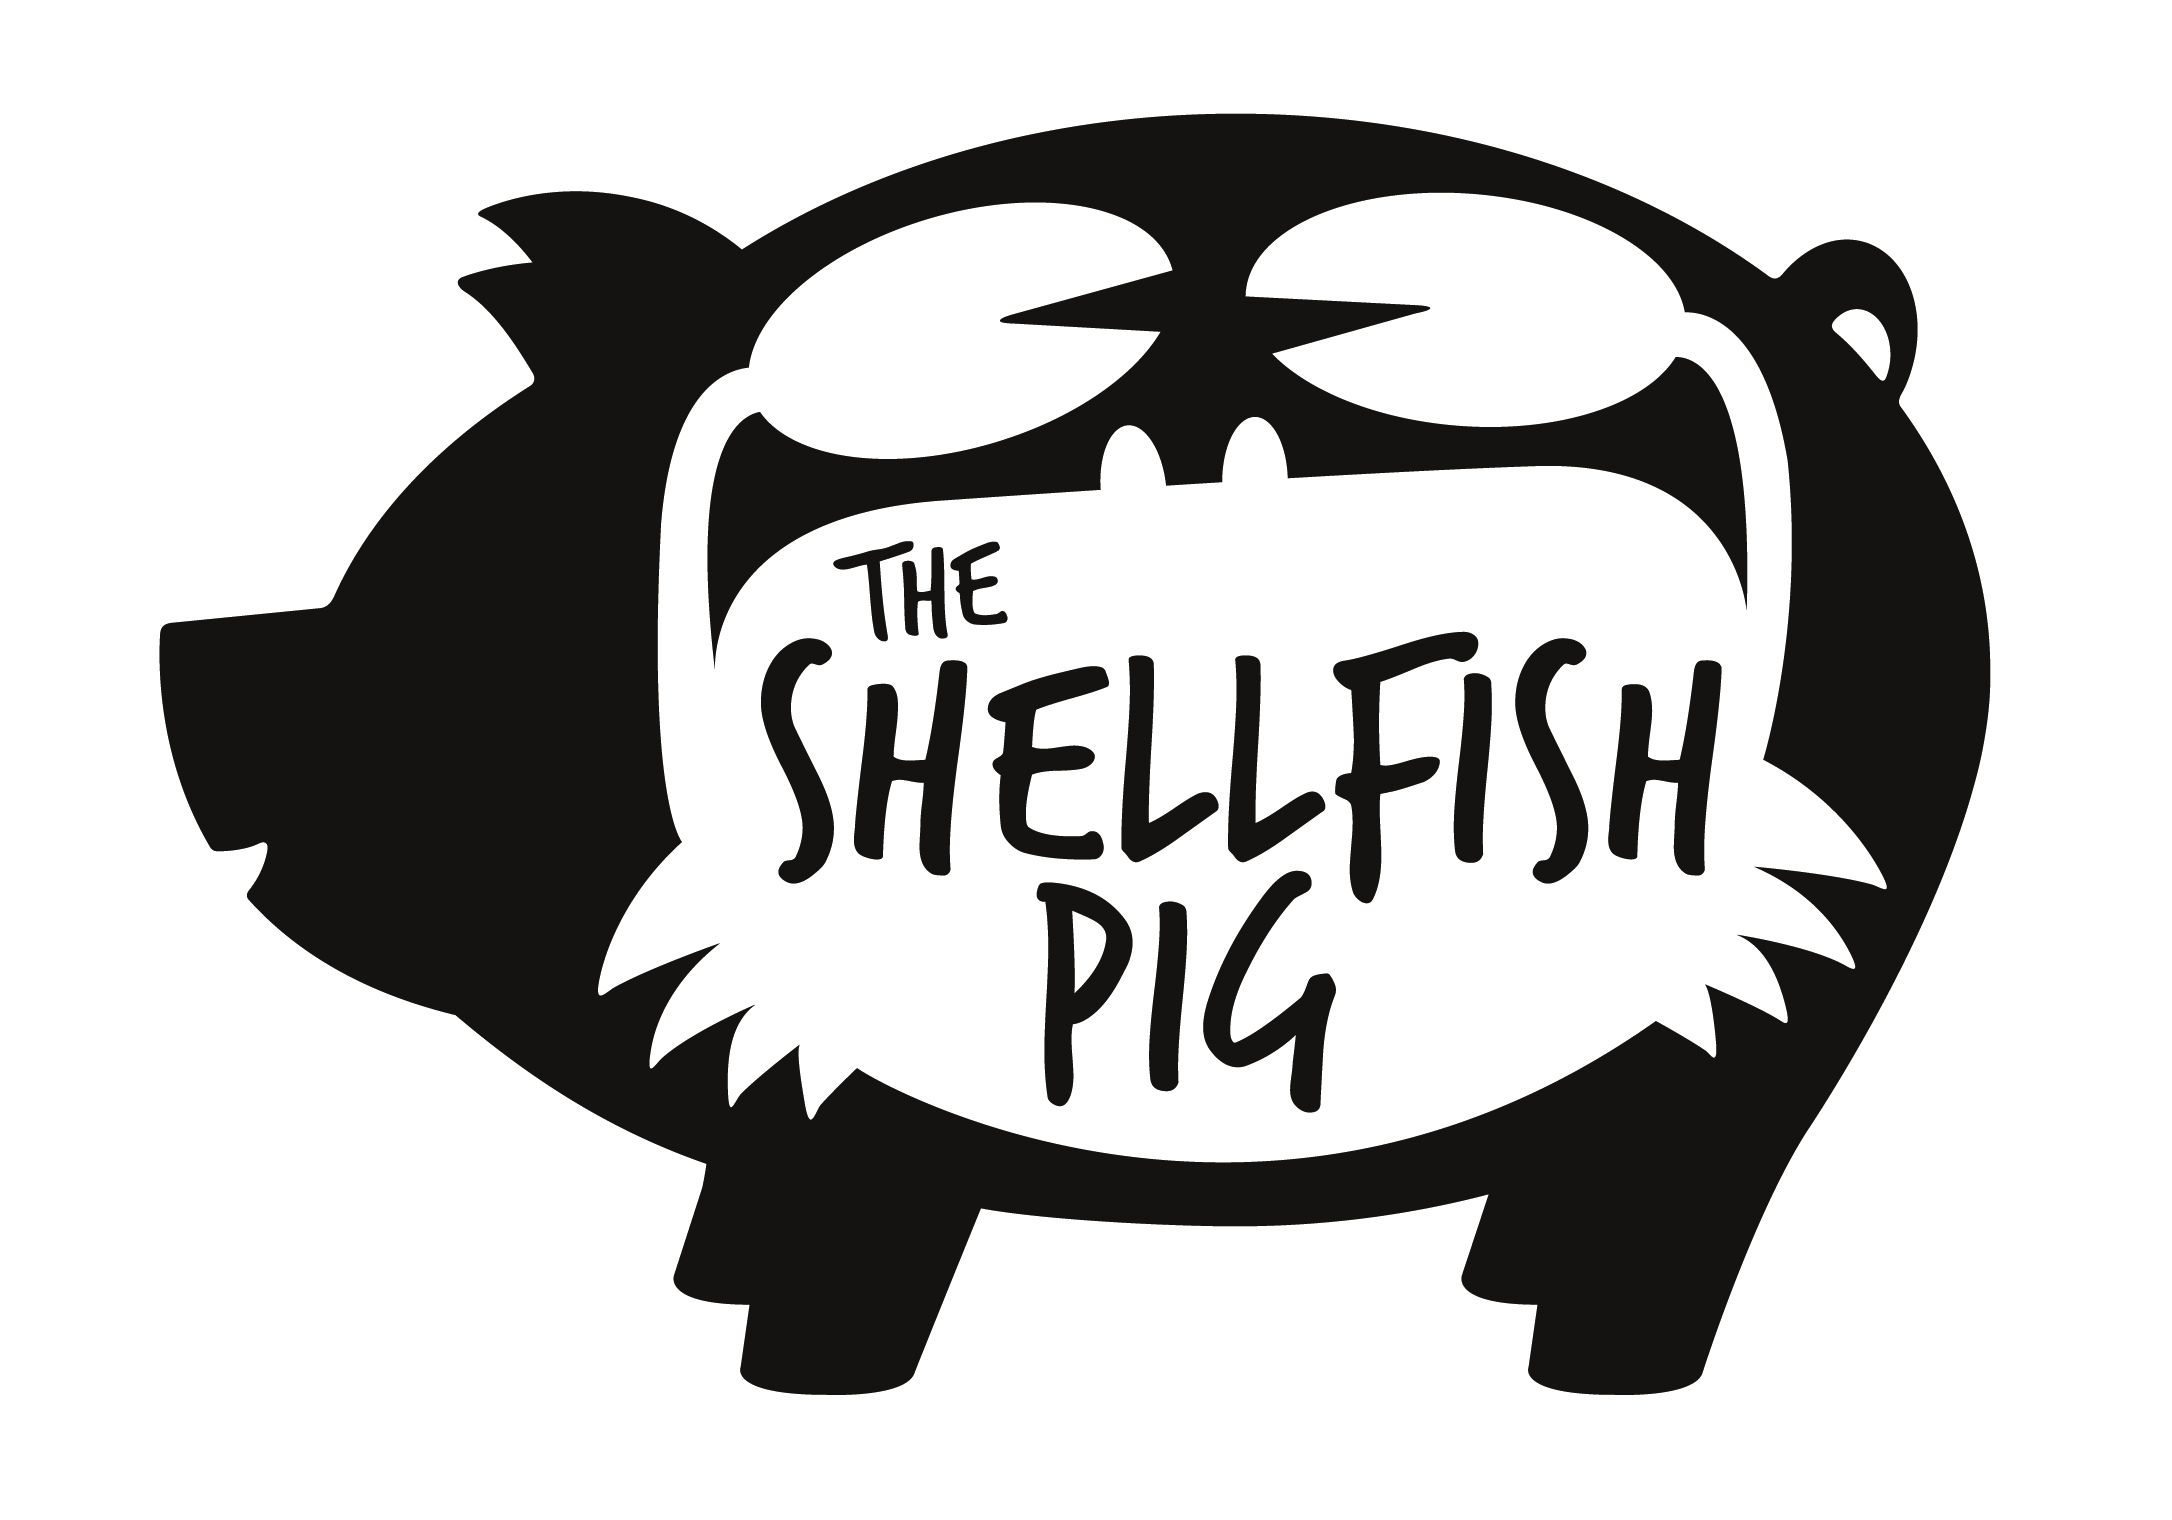 Pre-order your food at Restormel Castle from The Shellfish Pig!